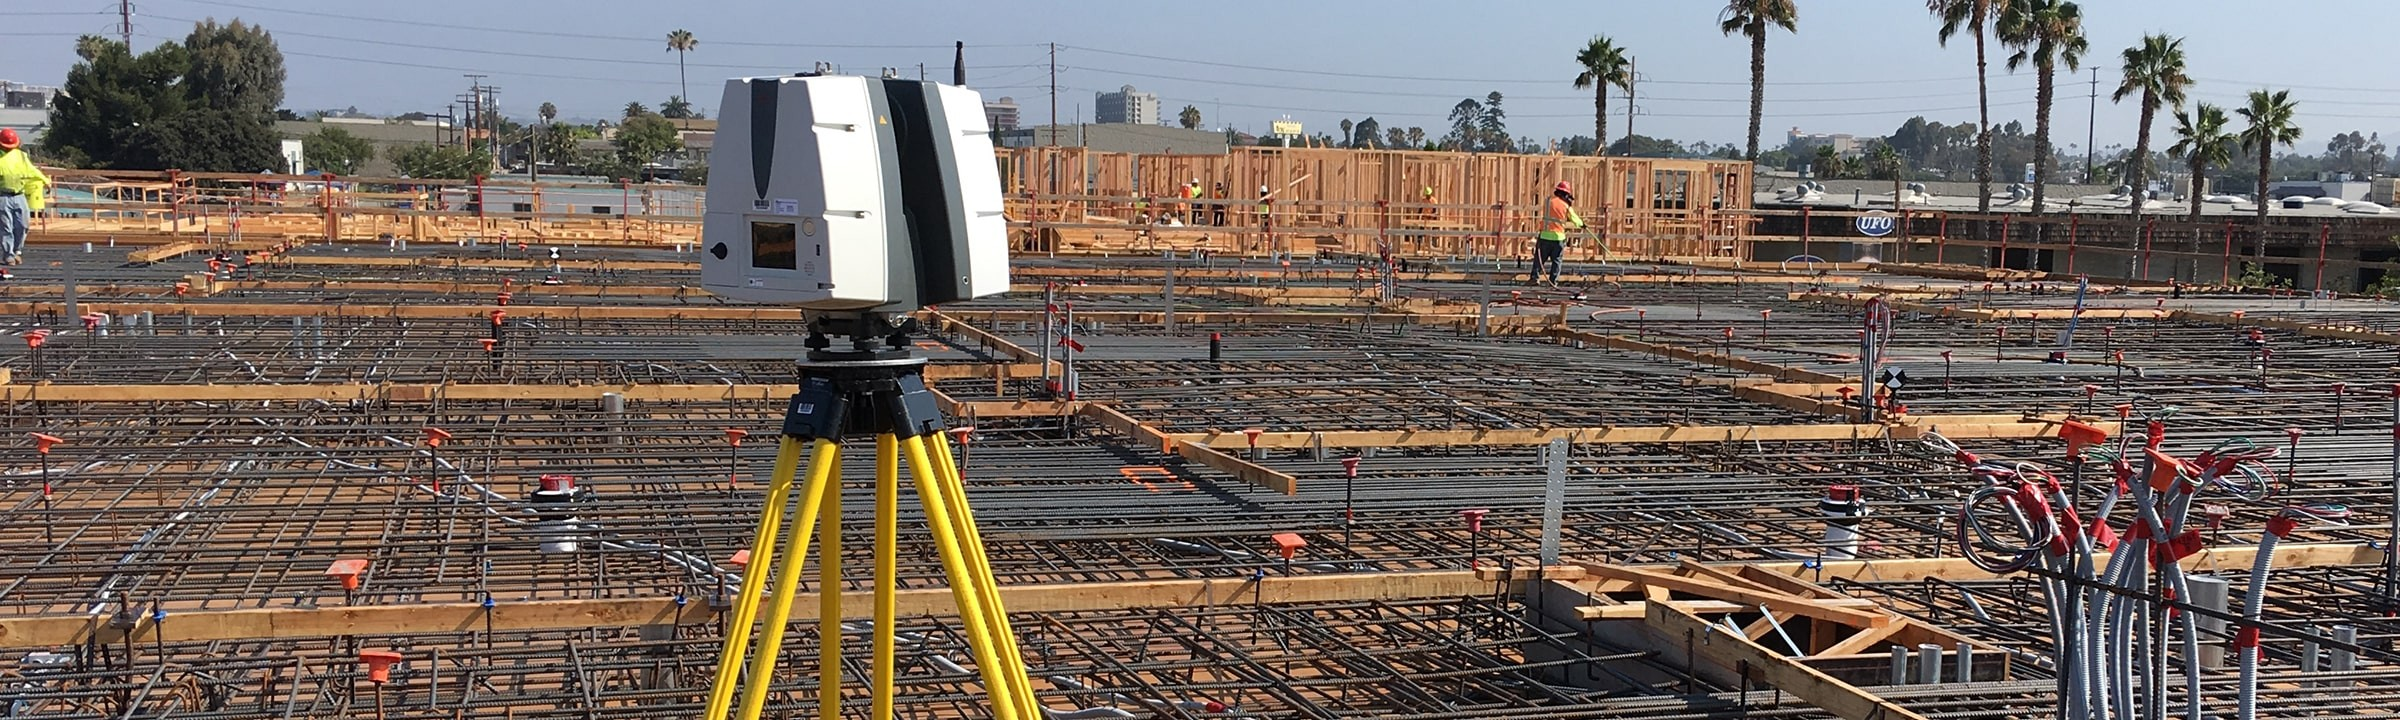 3d laser scanning existing conditions